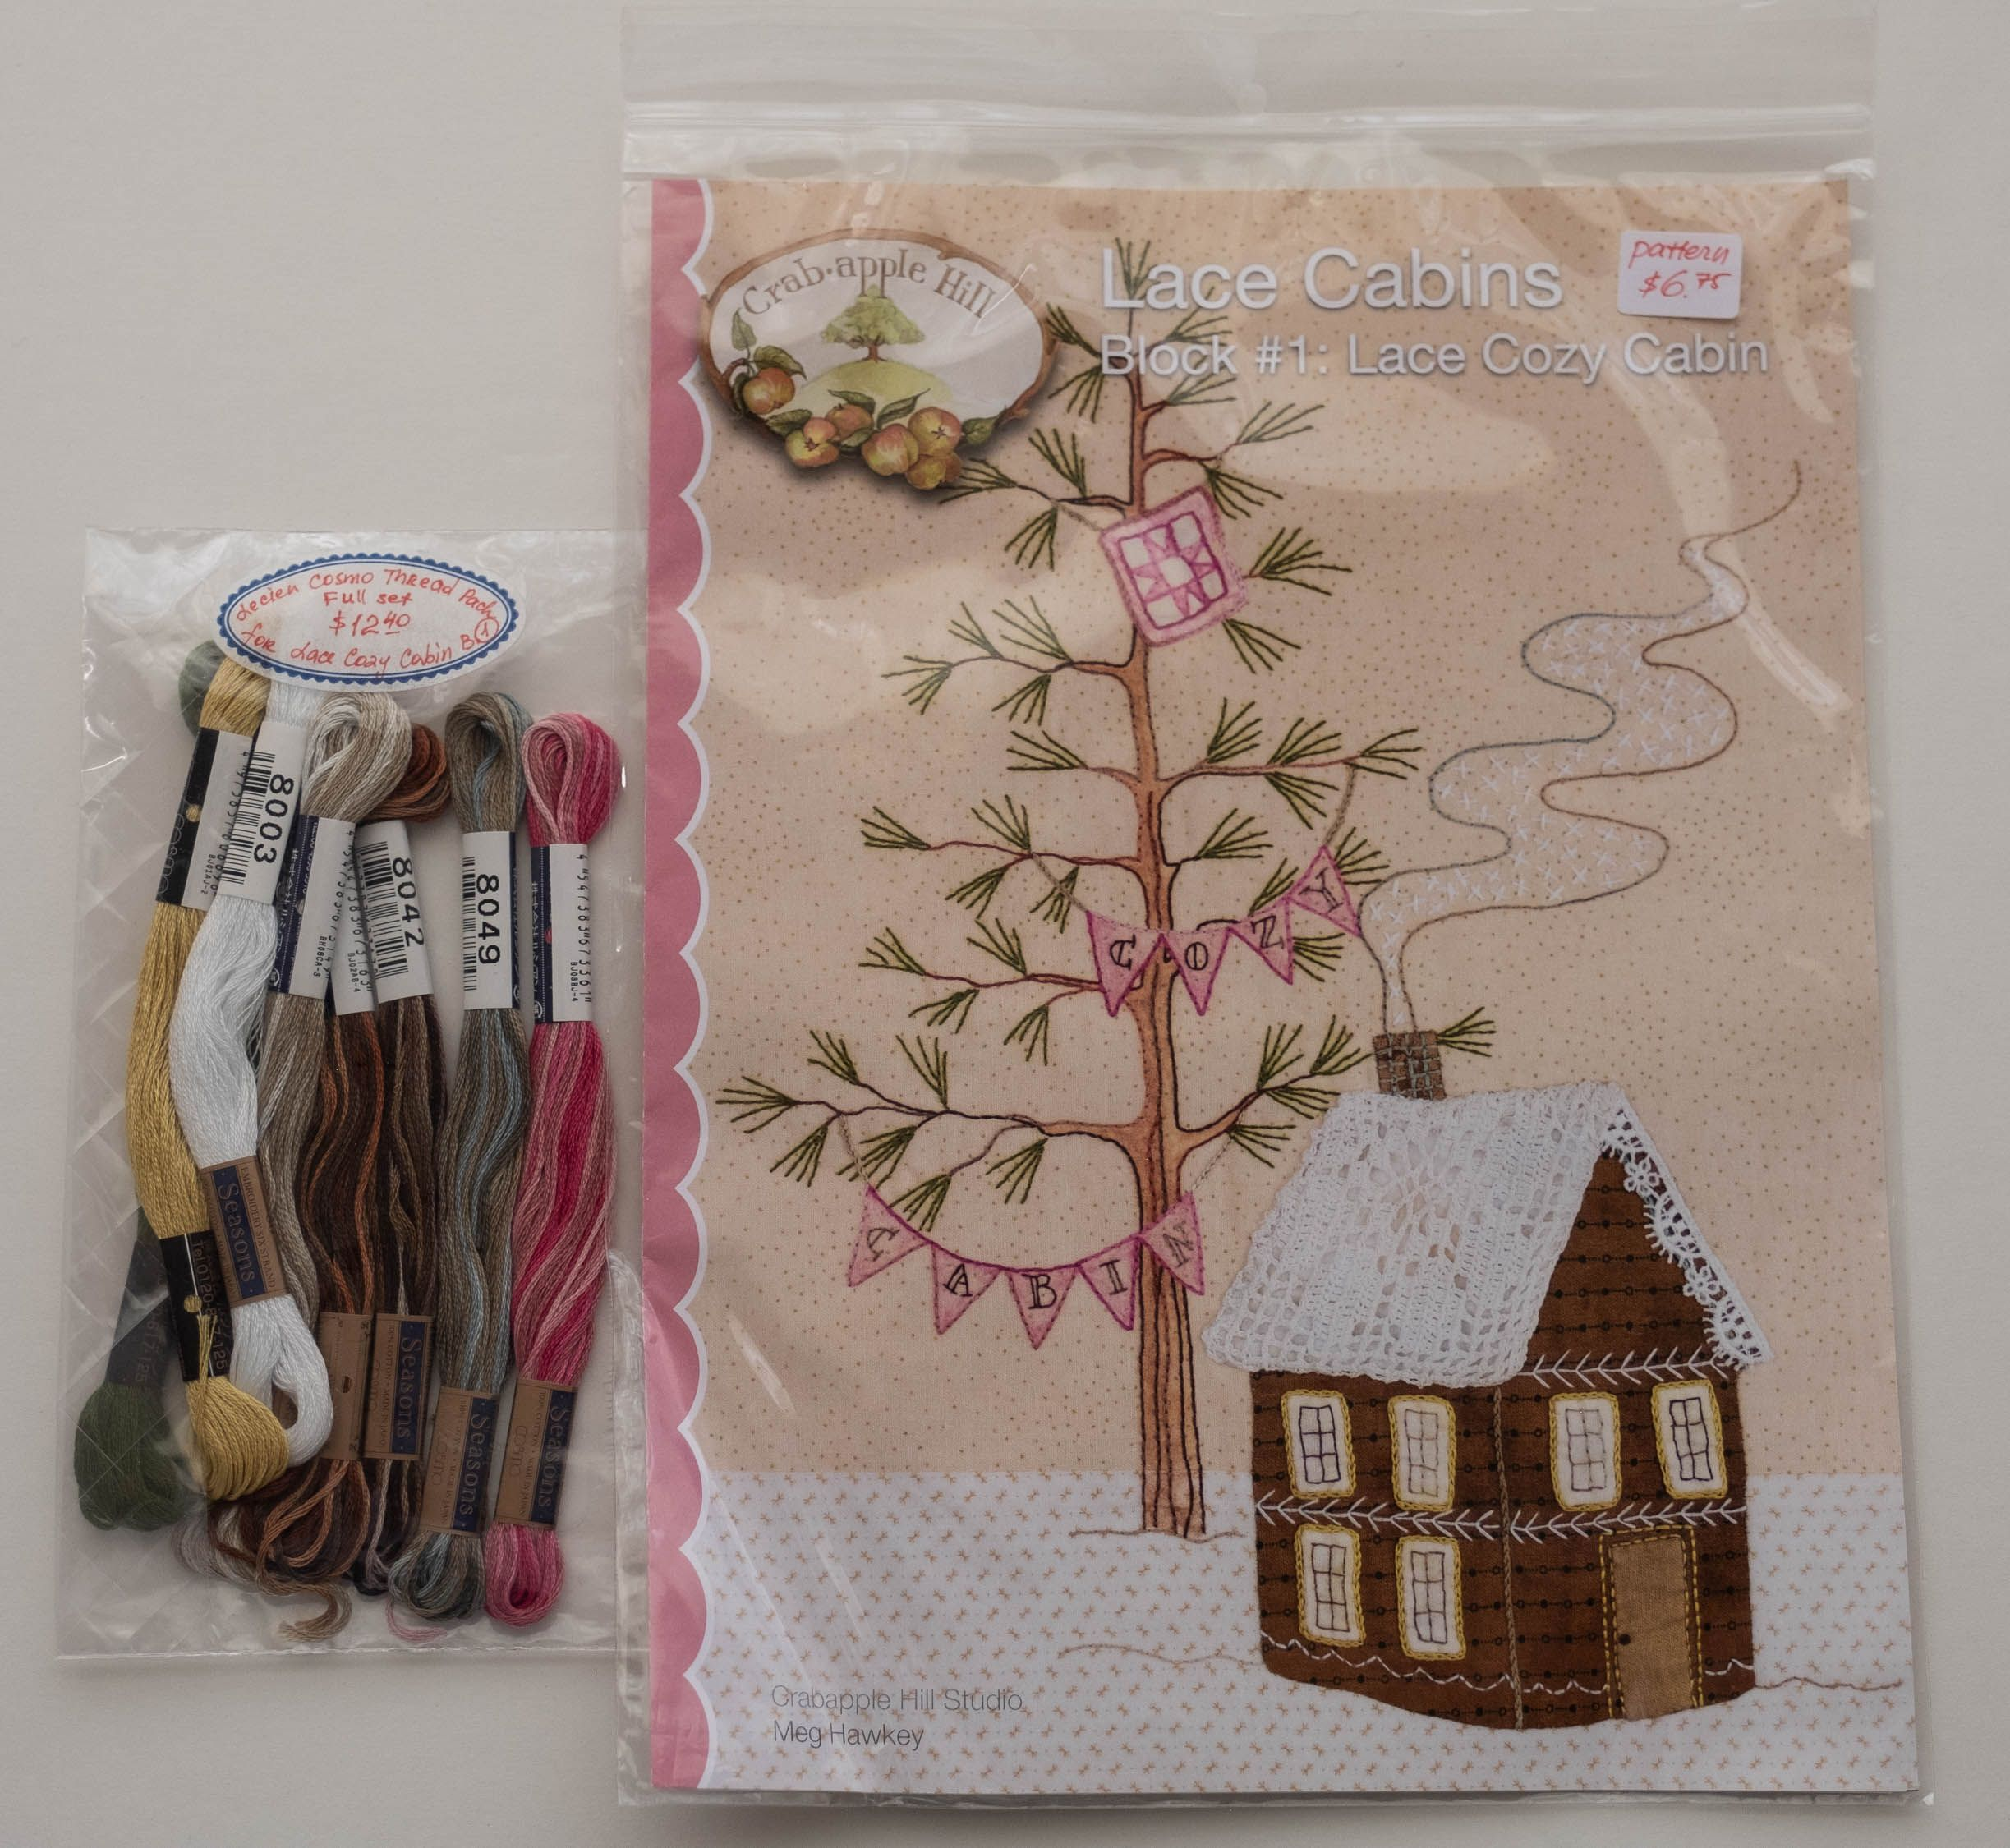 COSMO Embroidery Floss Pack from Lecien, Japan, for the Pattern of Block 1, Lace Cozy Cabin by Meg Hawkey for the Crabapple Hill Designs